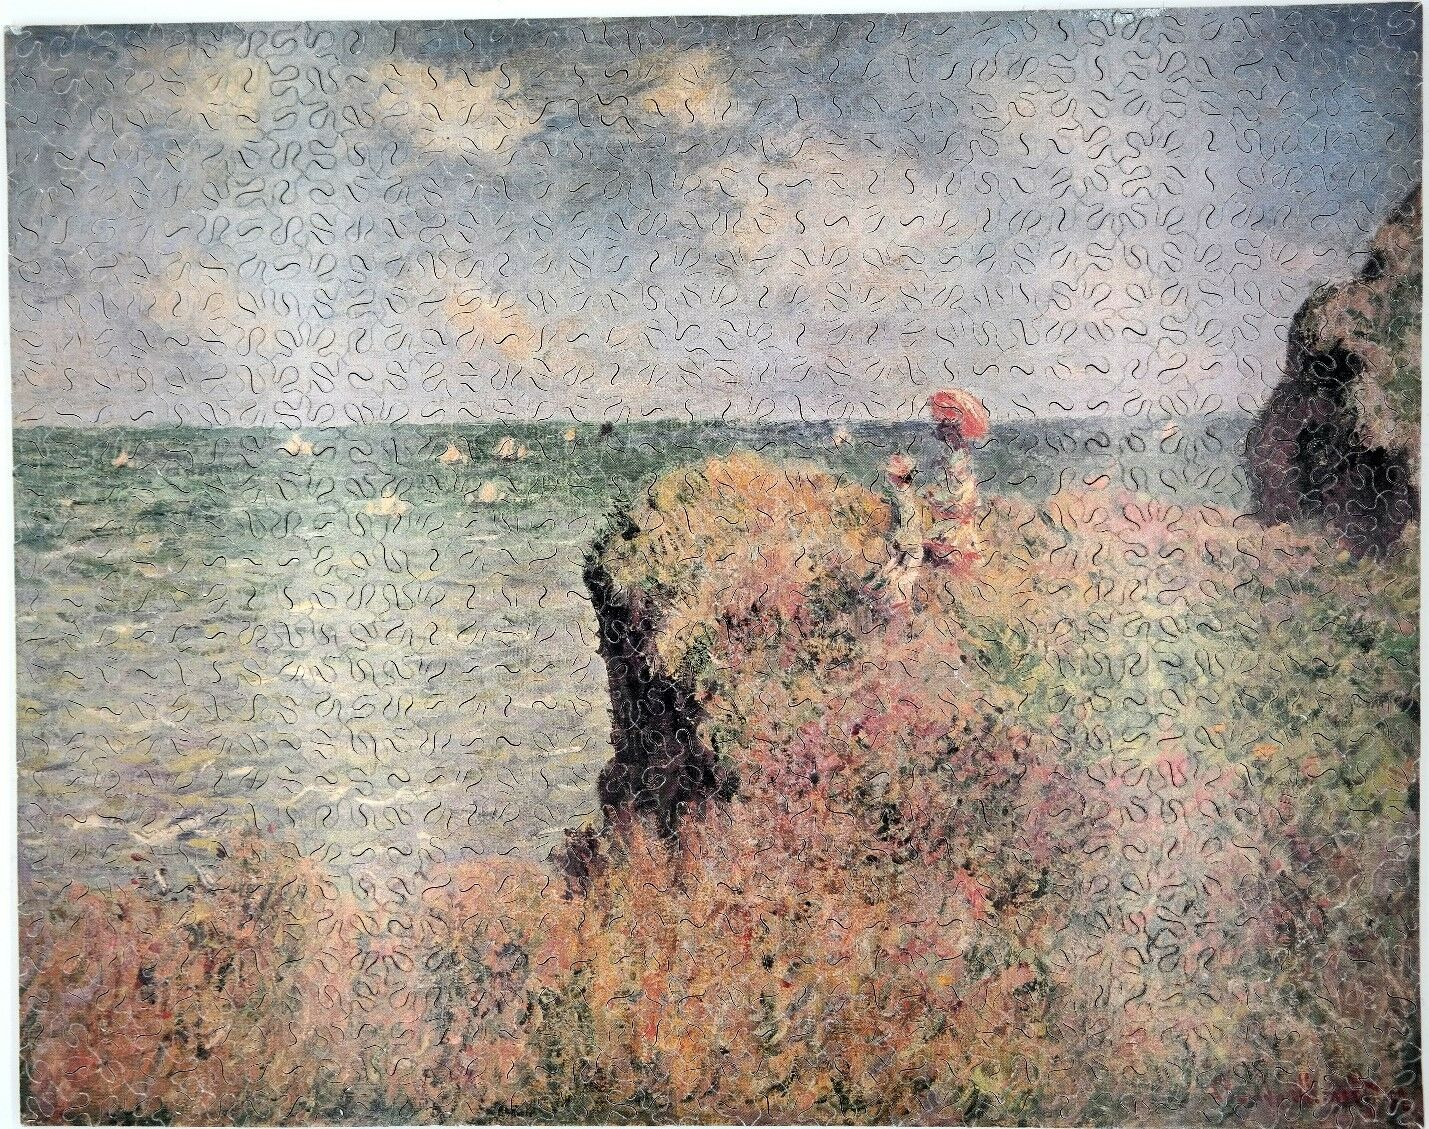 Nuovo Hand Cut Wooden Monet  The Cliff Walk  605 pc Jigsaw Puzzle in plywood box